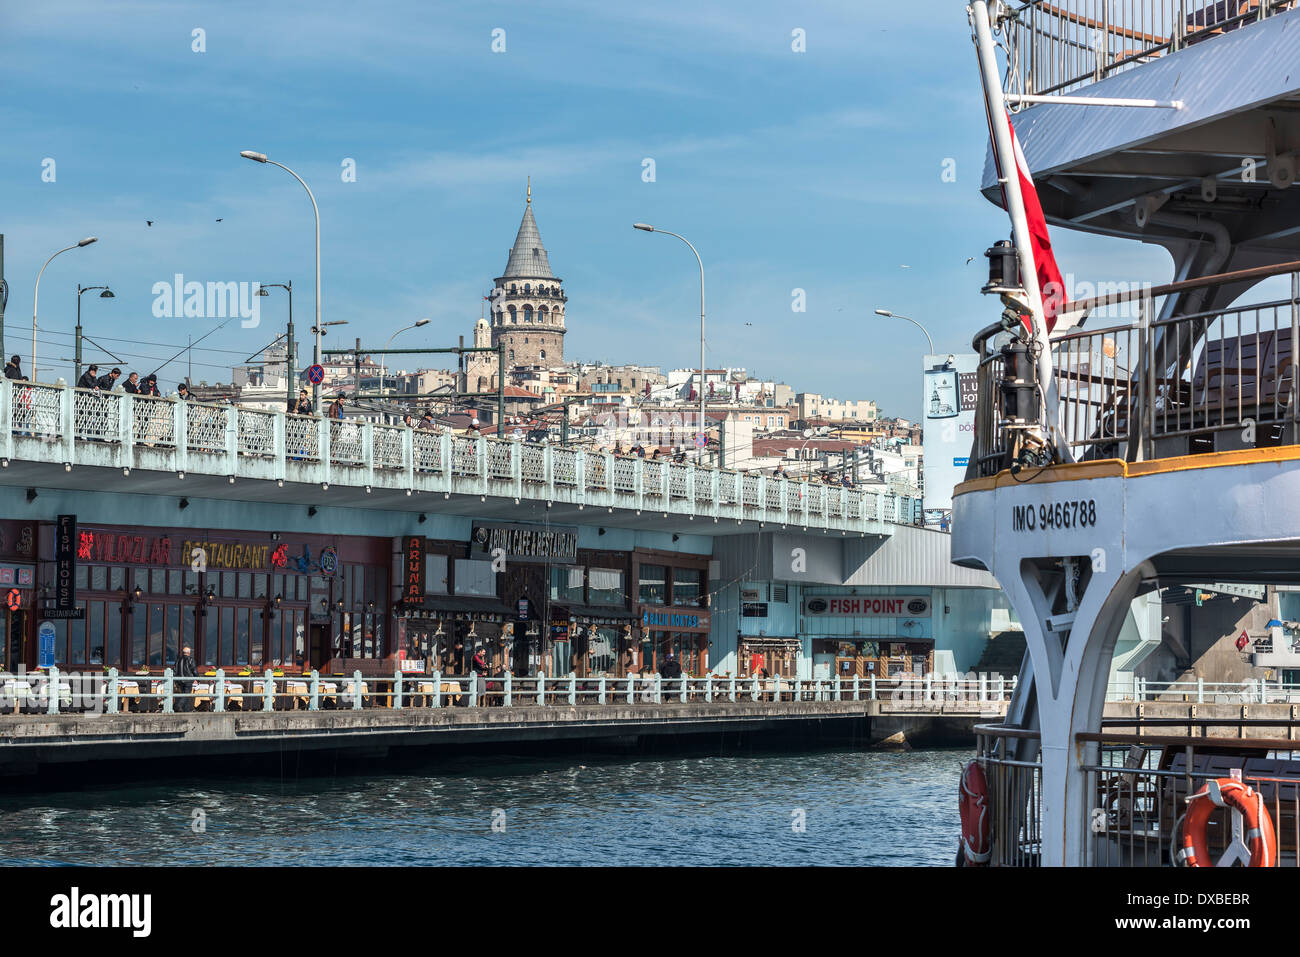 View from Eminonu across the Golden Horn to the Galata bridge with Galata tower and Beyoglu on the Istanbul skyline, Turkey. - Stock Image